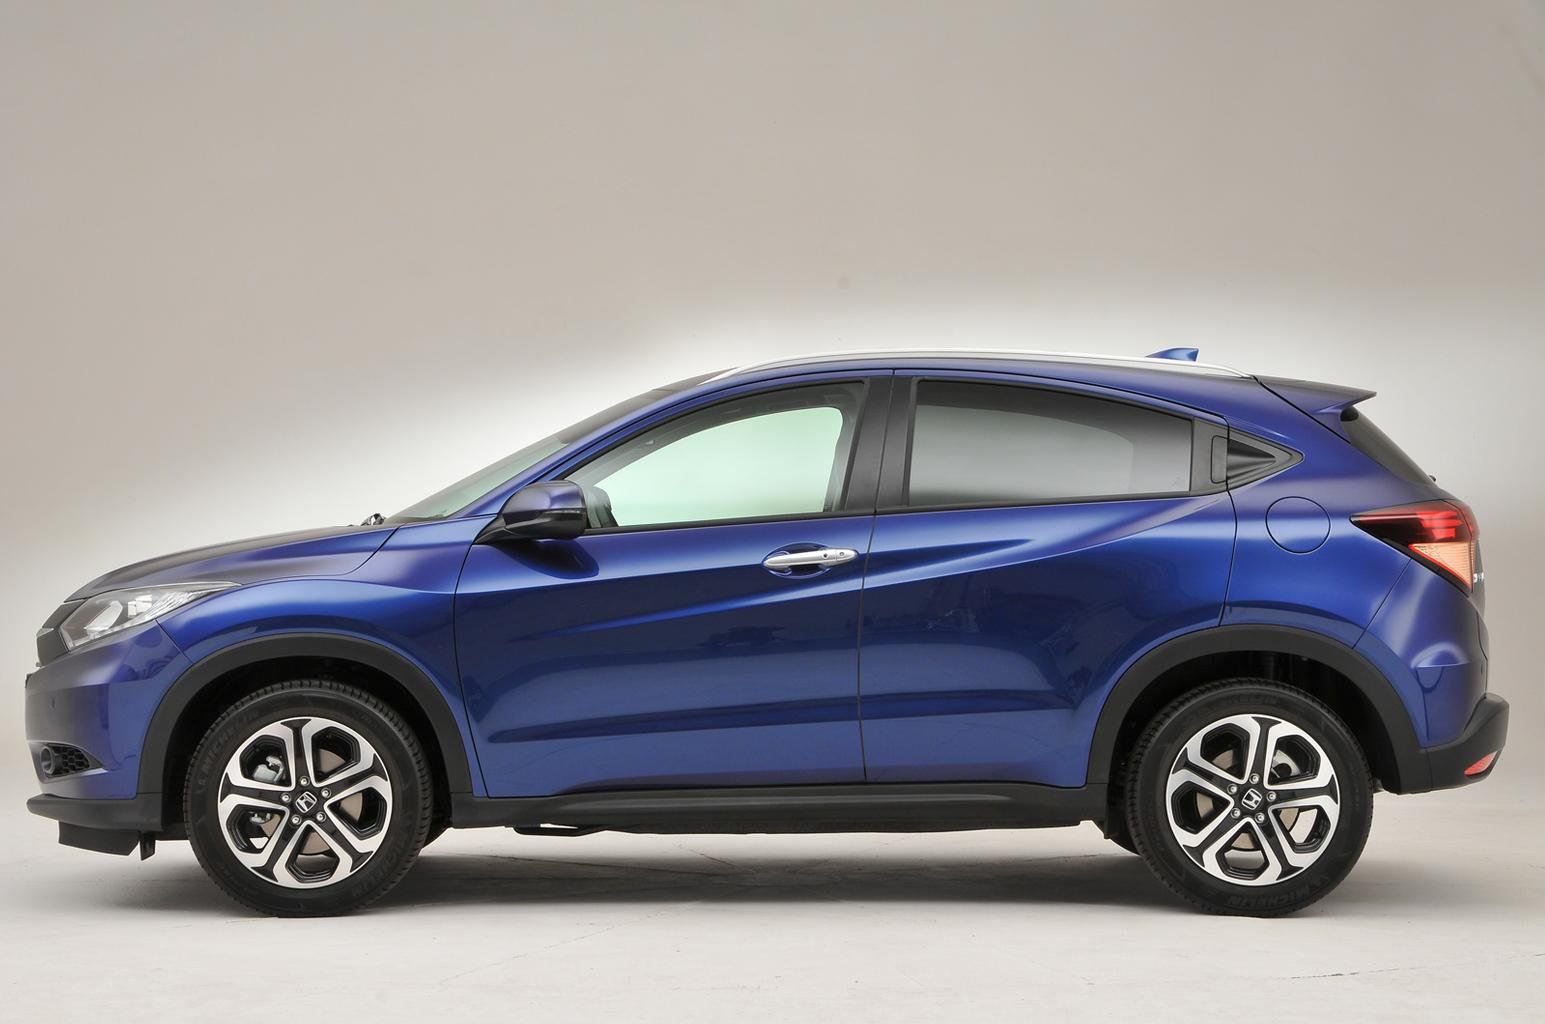 2015 Honda HR-V assessed by What Car? readers